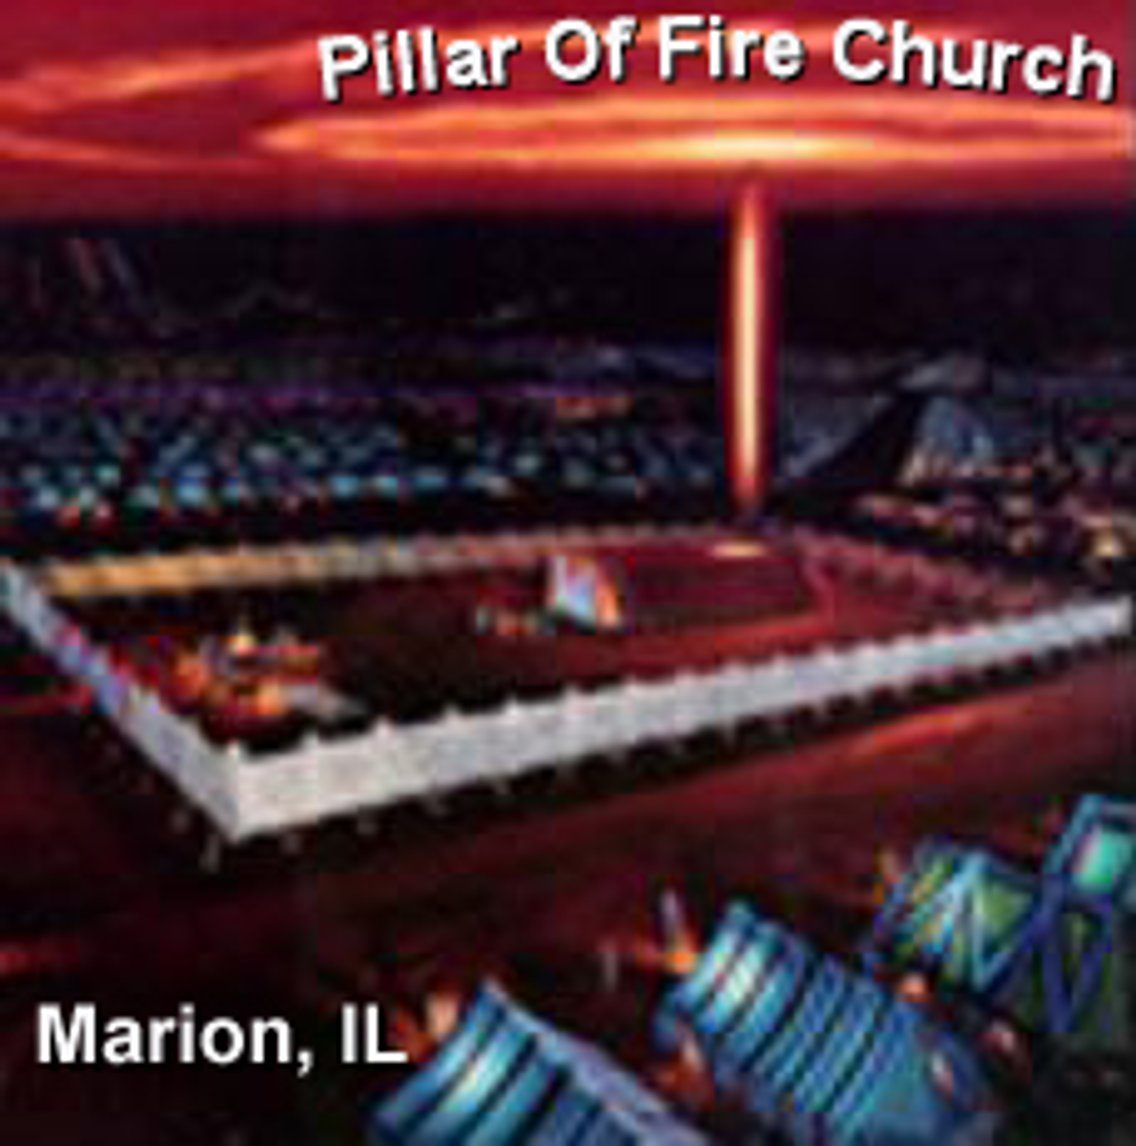 Pillar of Fire Church, Marion, Il - Cover Image